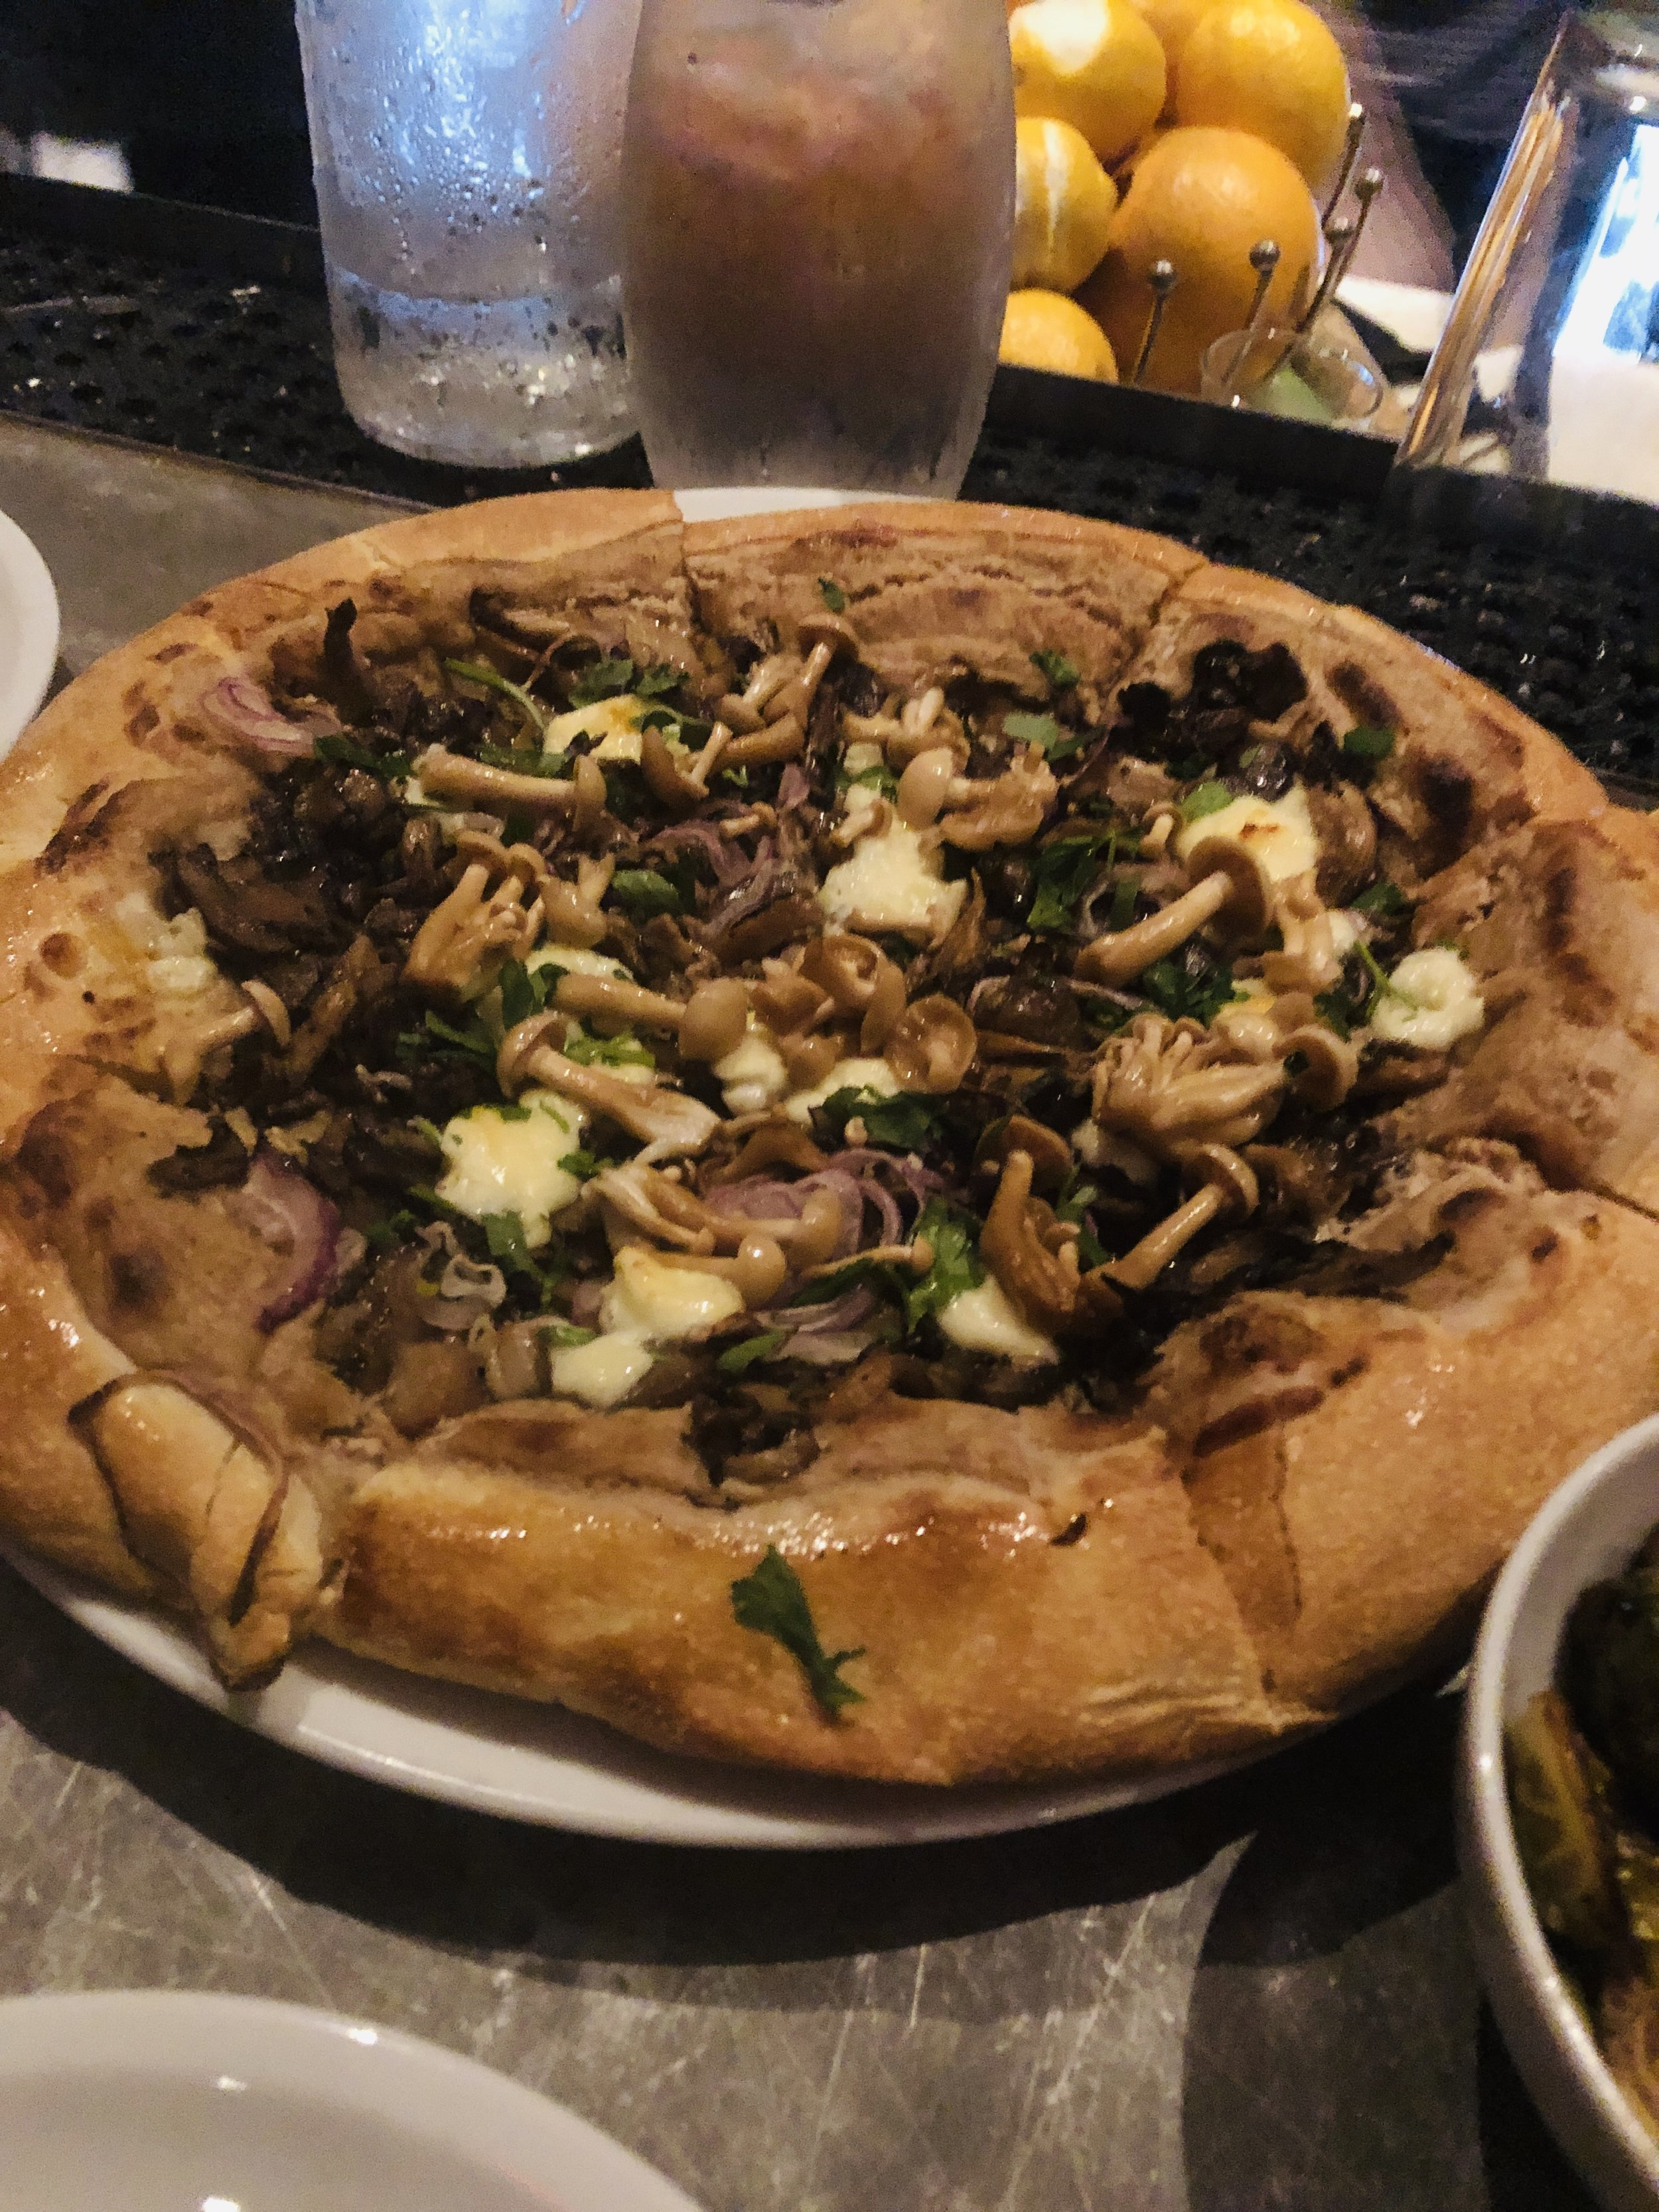 Still daydreaming about this mushroom pizza at    Coltivare